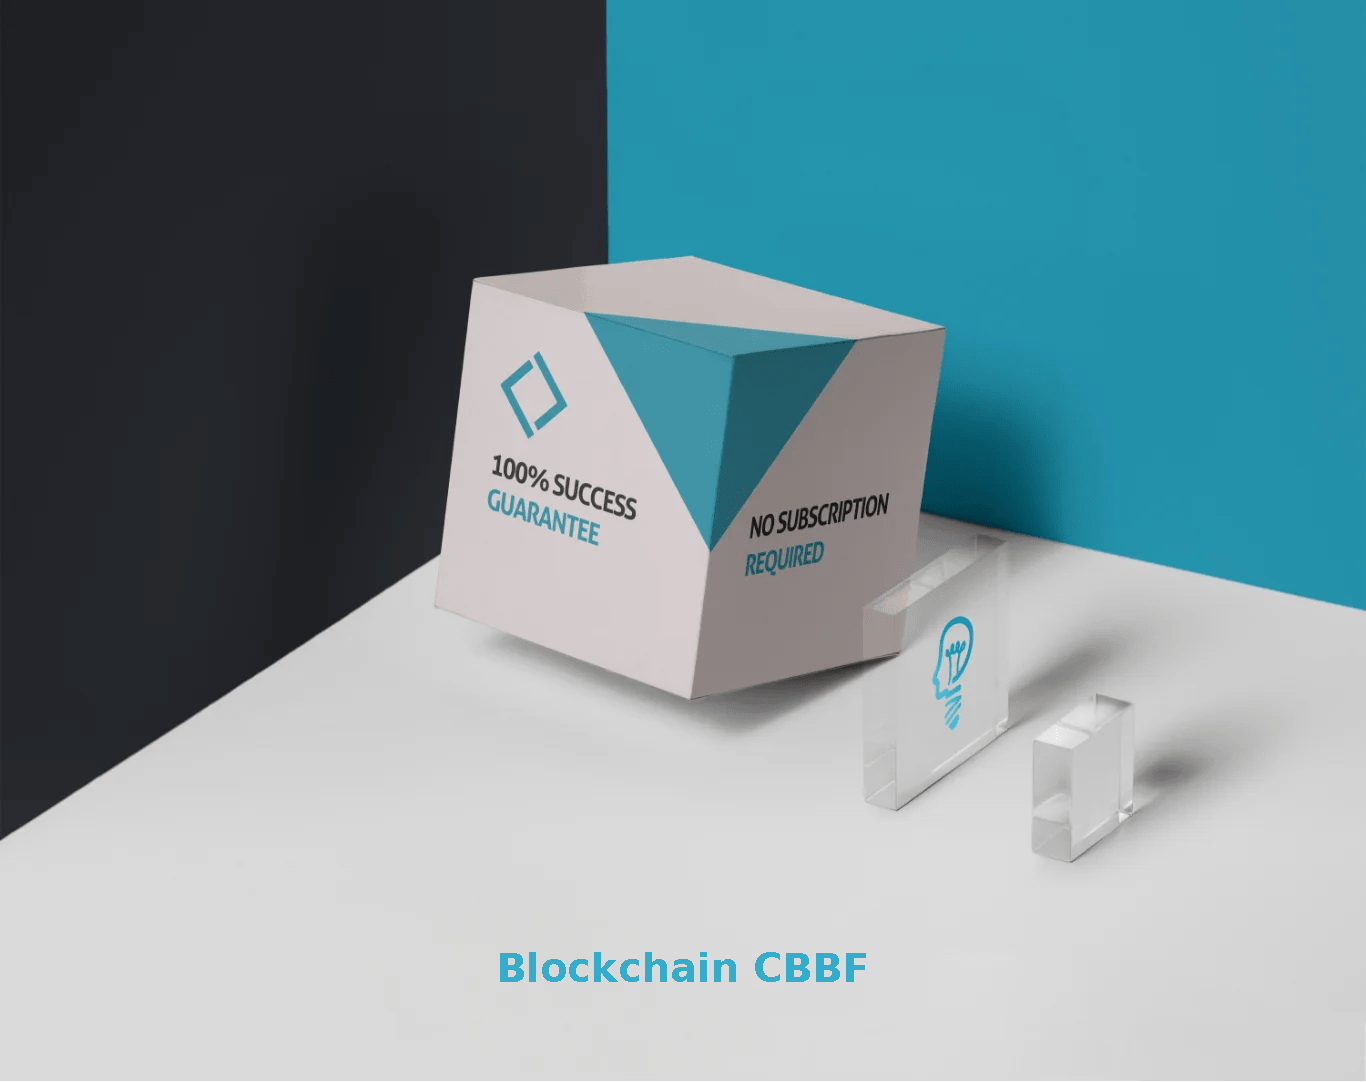 Blockchain CBBF Exams